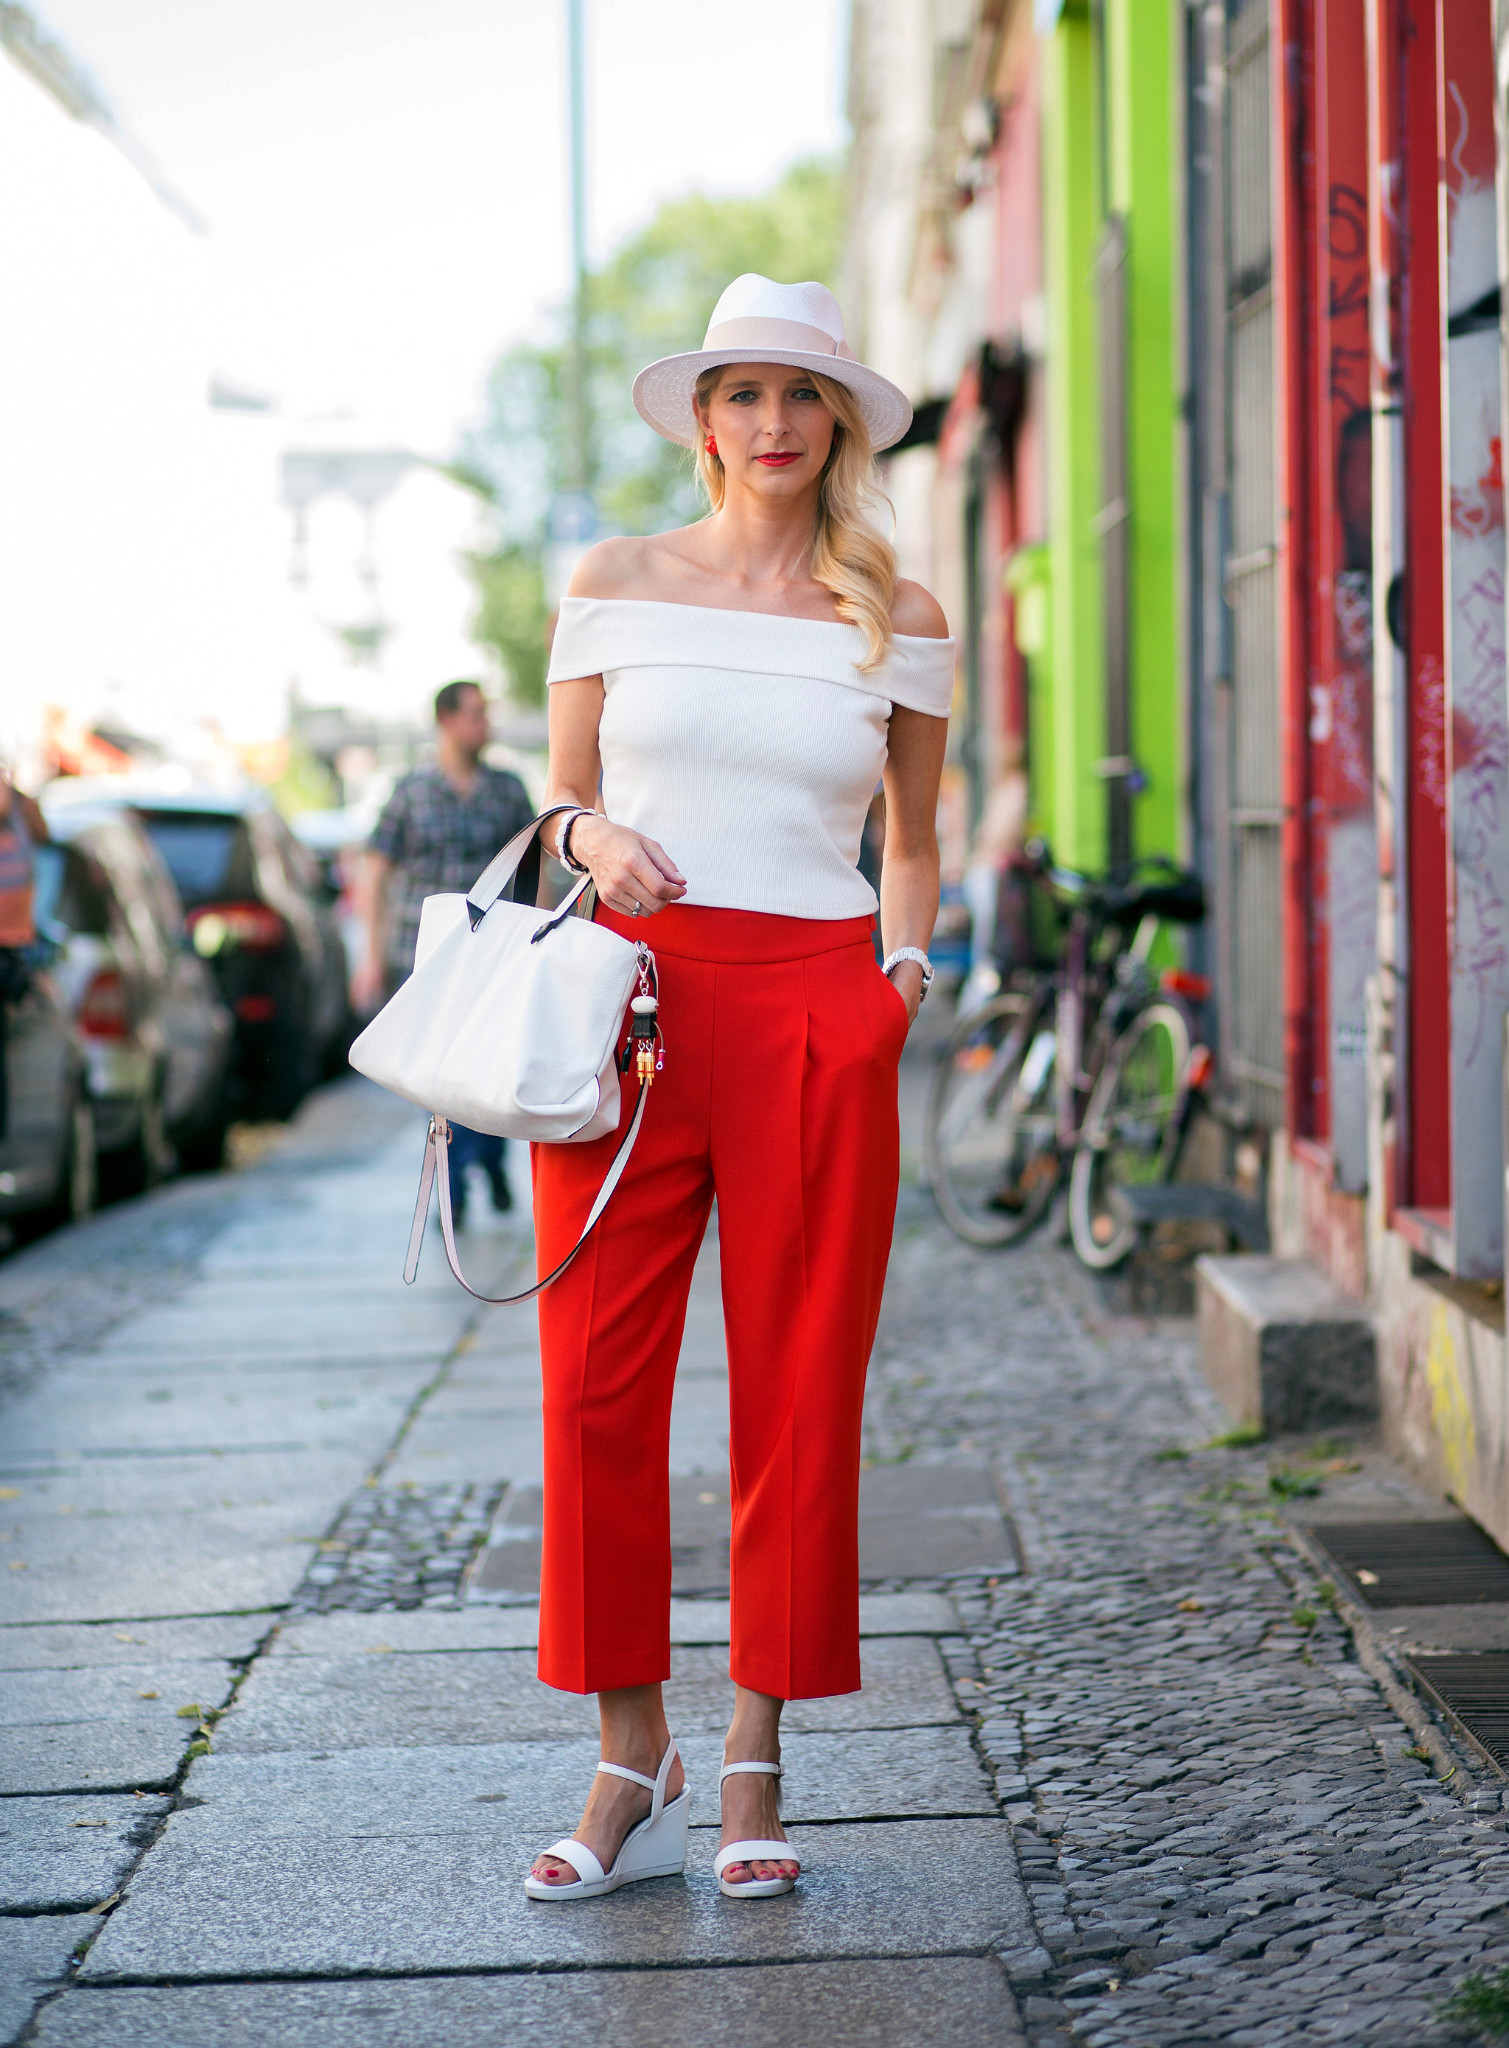 Fashion_Outfit_MBFWB_ShopStyle-Sanctuary-Berlin-Fashion-Week-7-9-Juli-2015-2